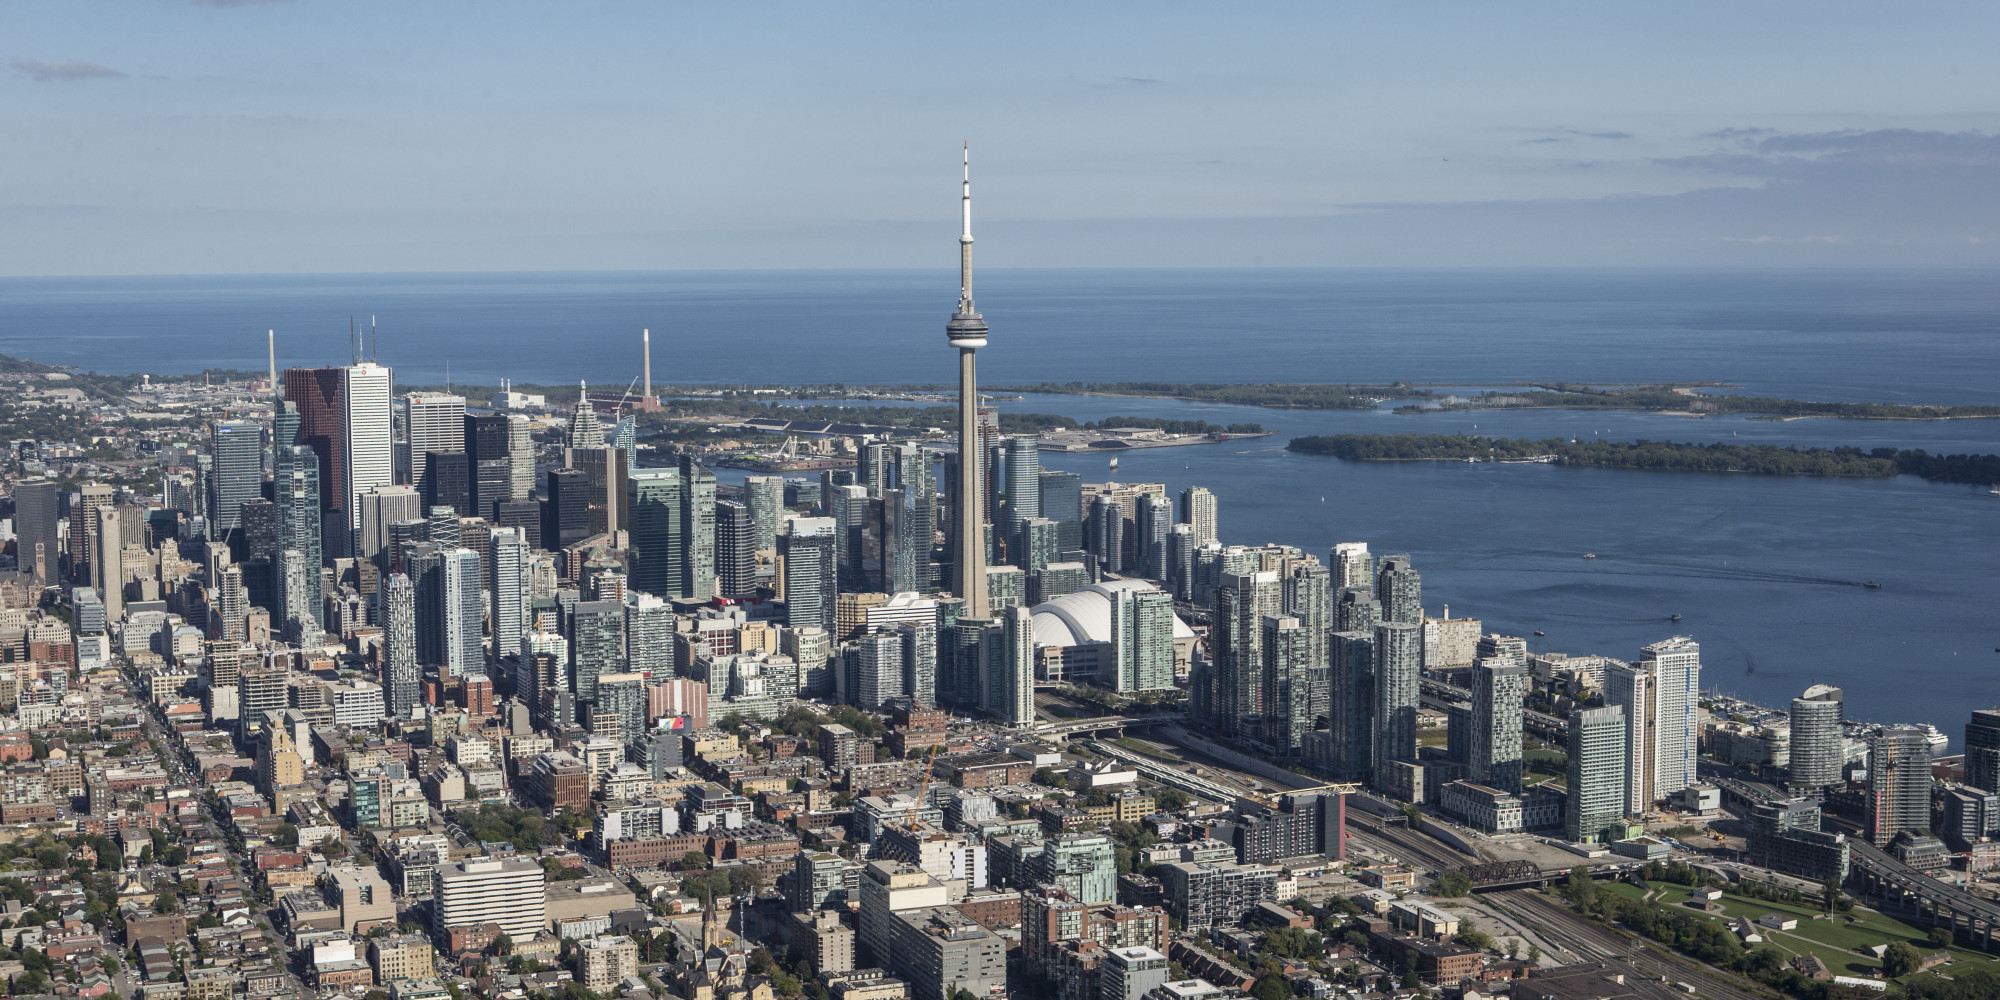 Toronto Plane Flying Low And Trailing Smoke Part Of